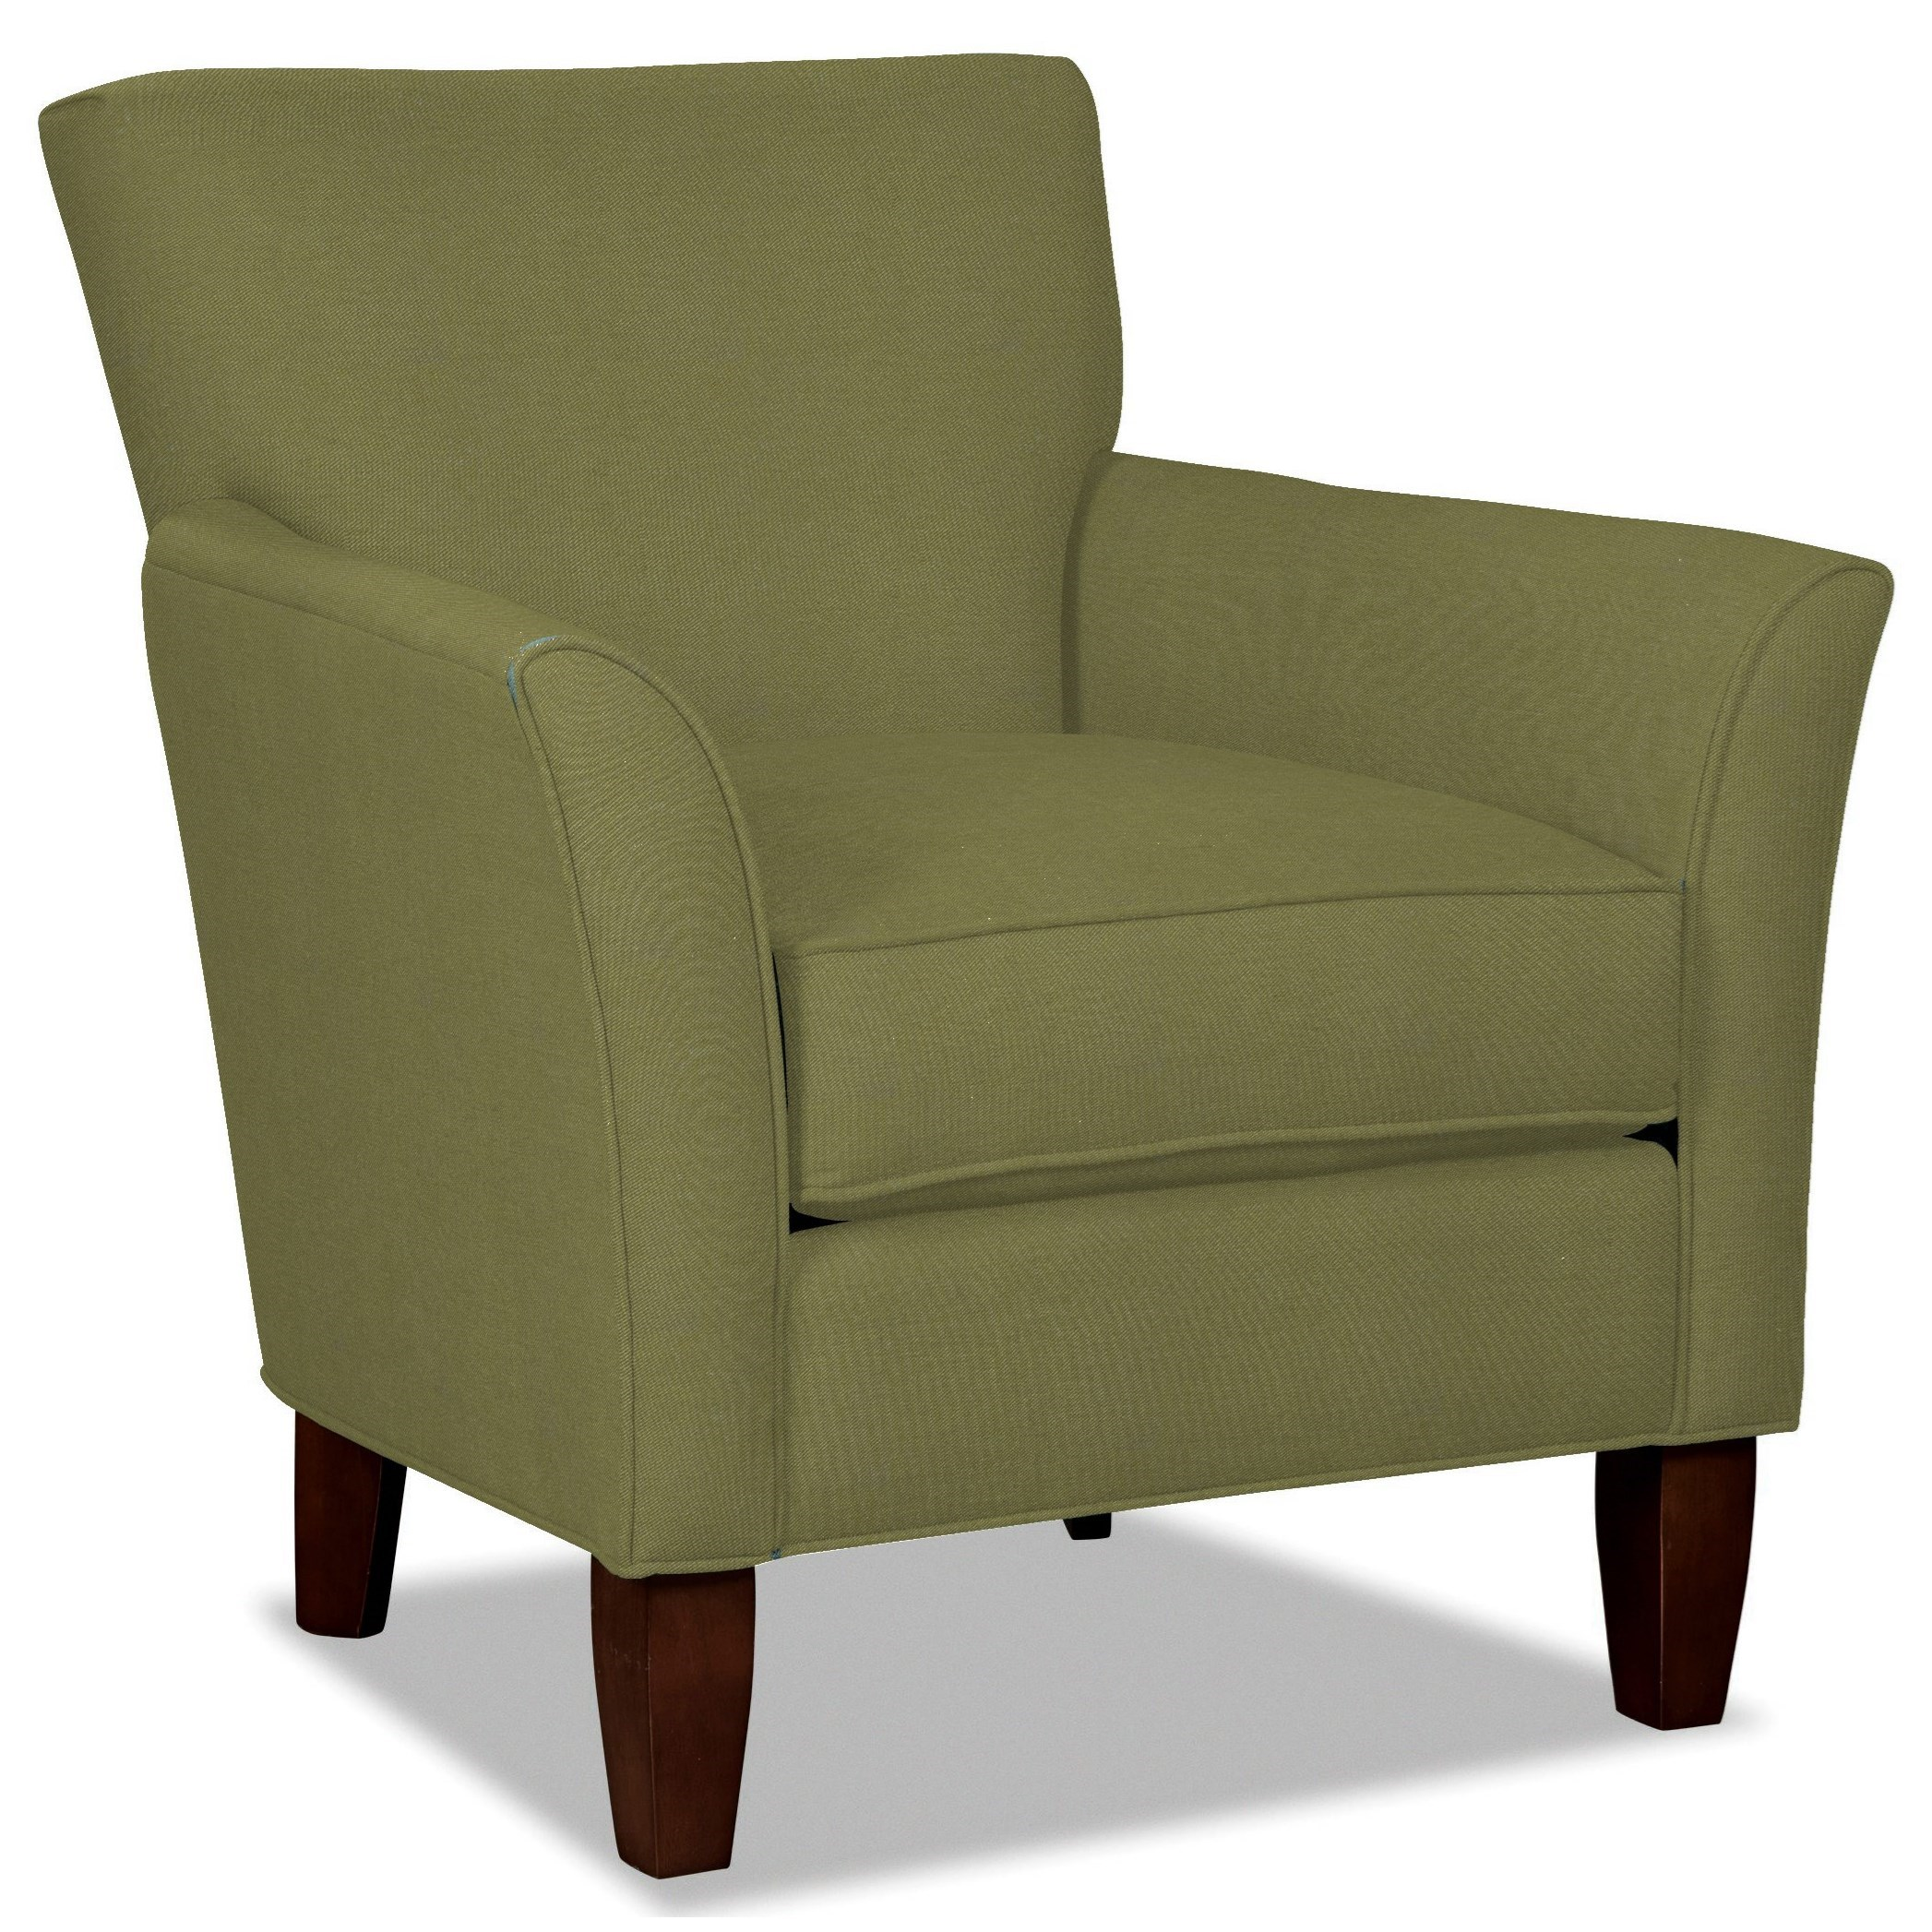 Craftmaster 060110 Accent Chair - Item Number: 060110-TOPSIDER-15